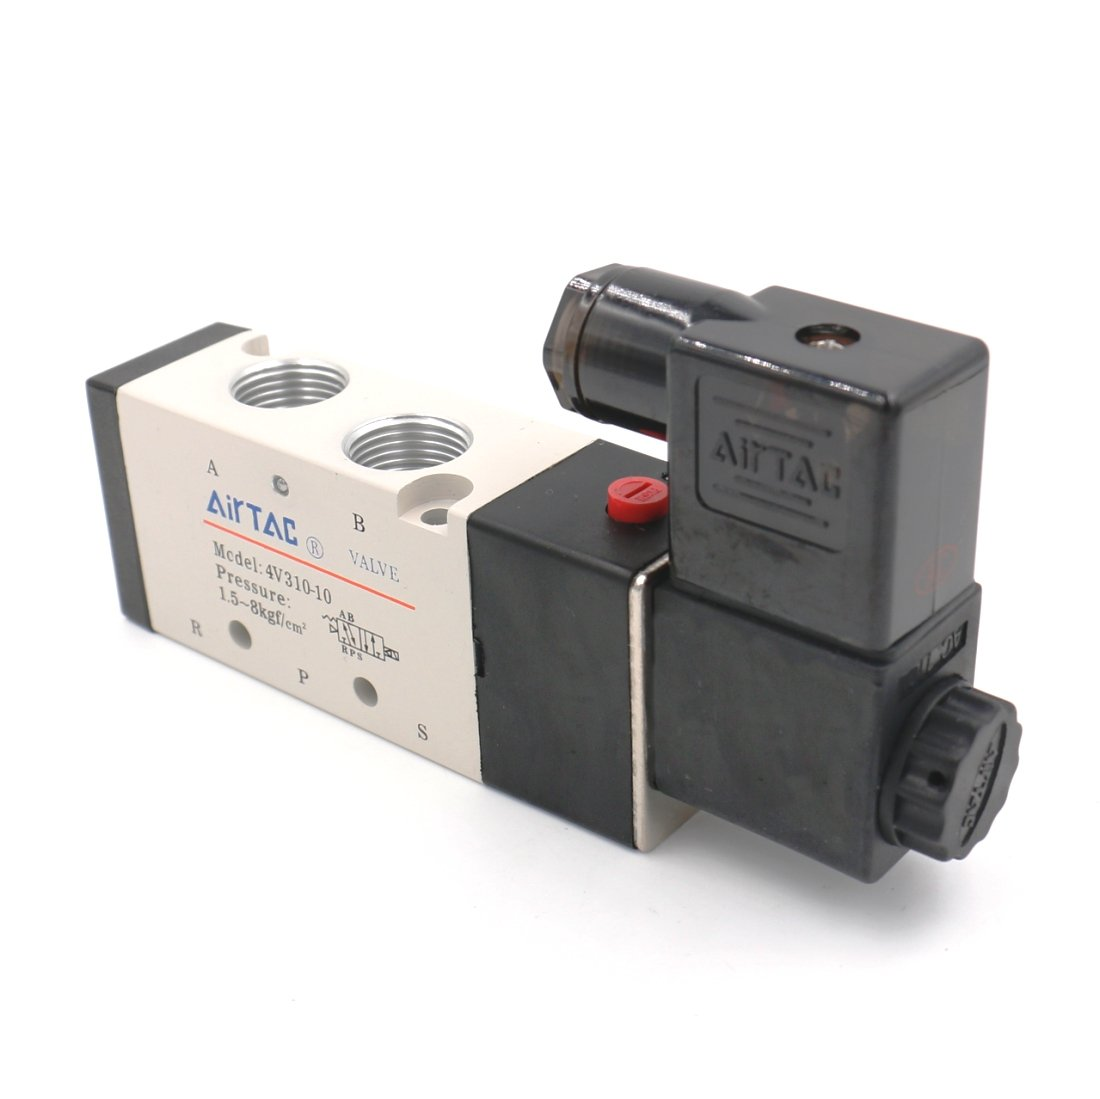 Baomain Pneumatic Solenoid Air Valve 4V310-10 AC110V 5 Way 2 Position PT3//8 Internally Piloted Acting Type Single Electrical Control